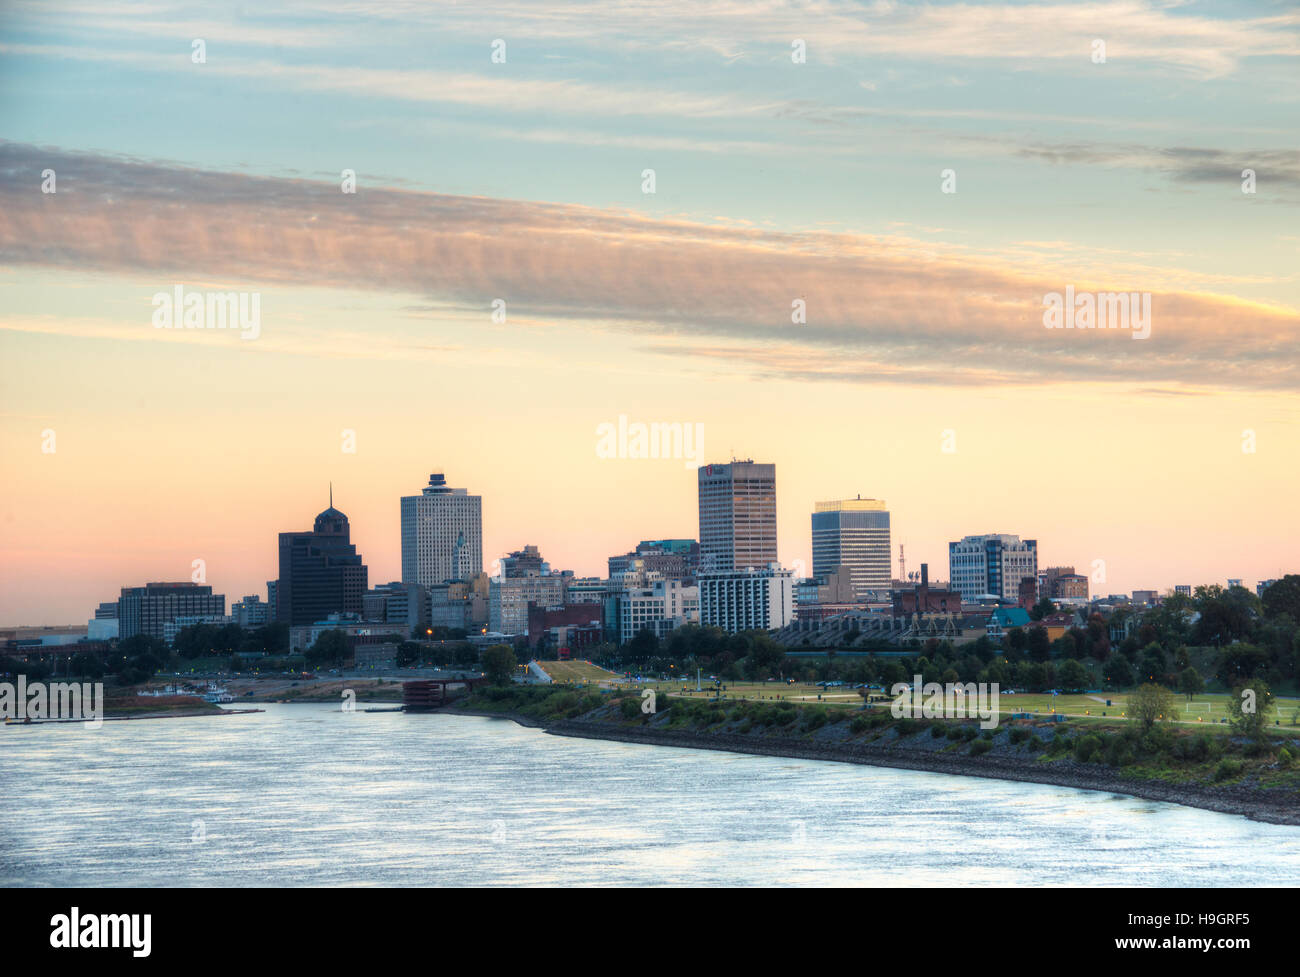 Memphis skyline at Sunrise with Mississippi River - Stock Image